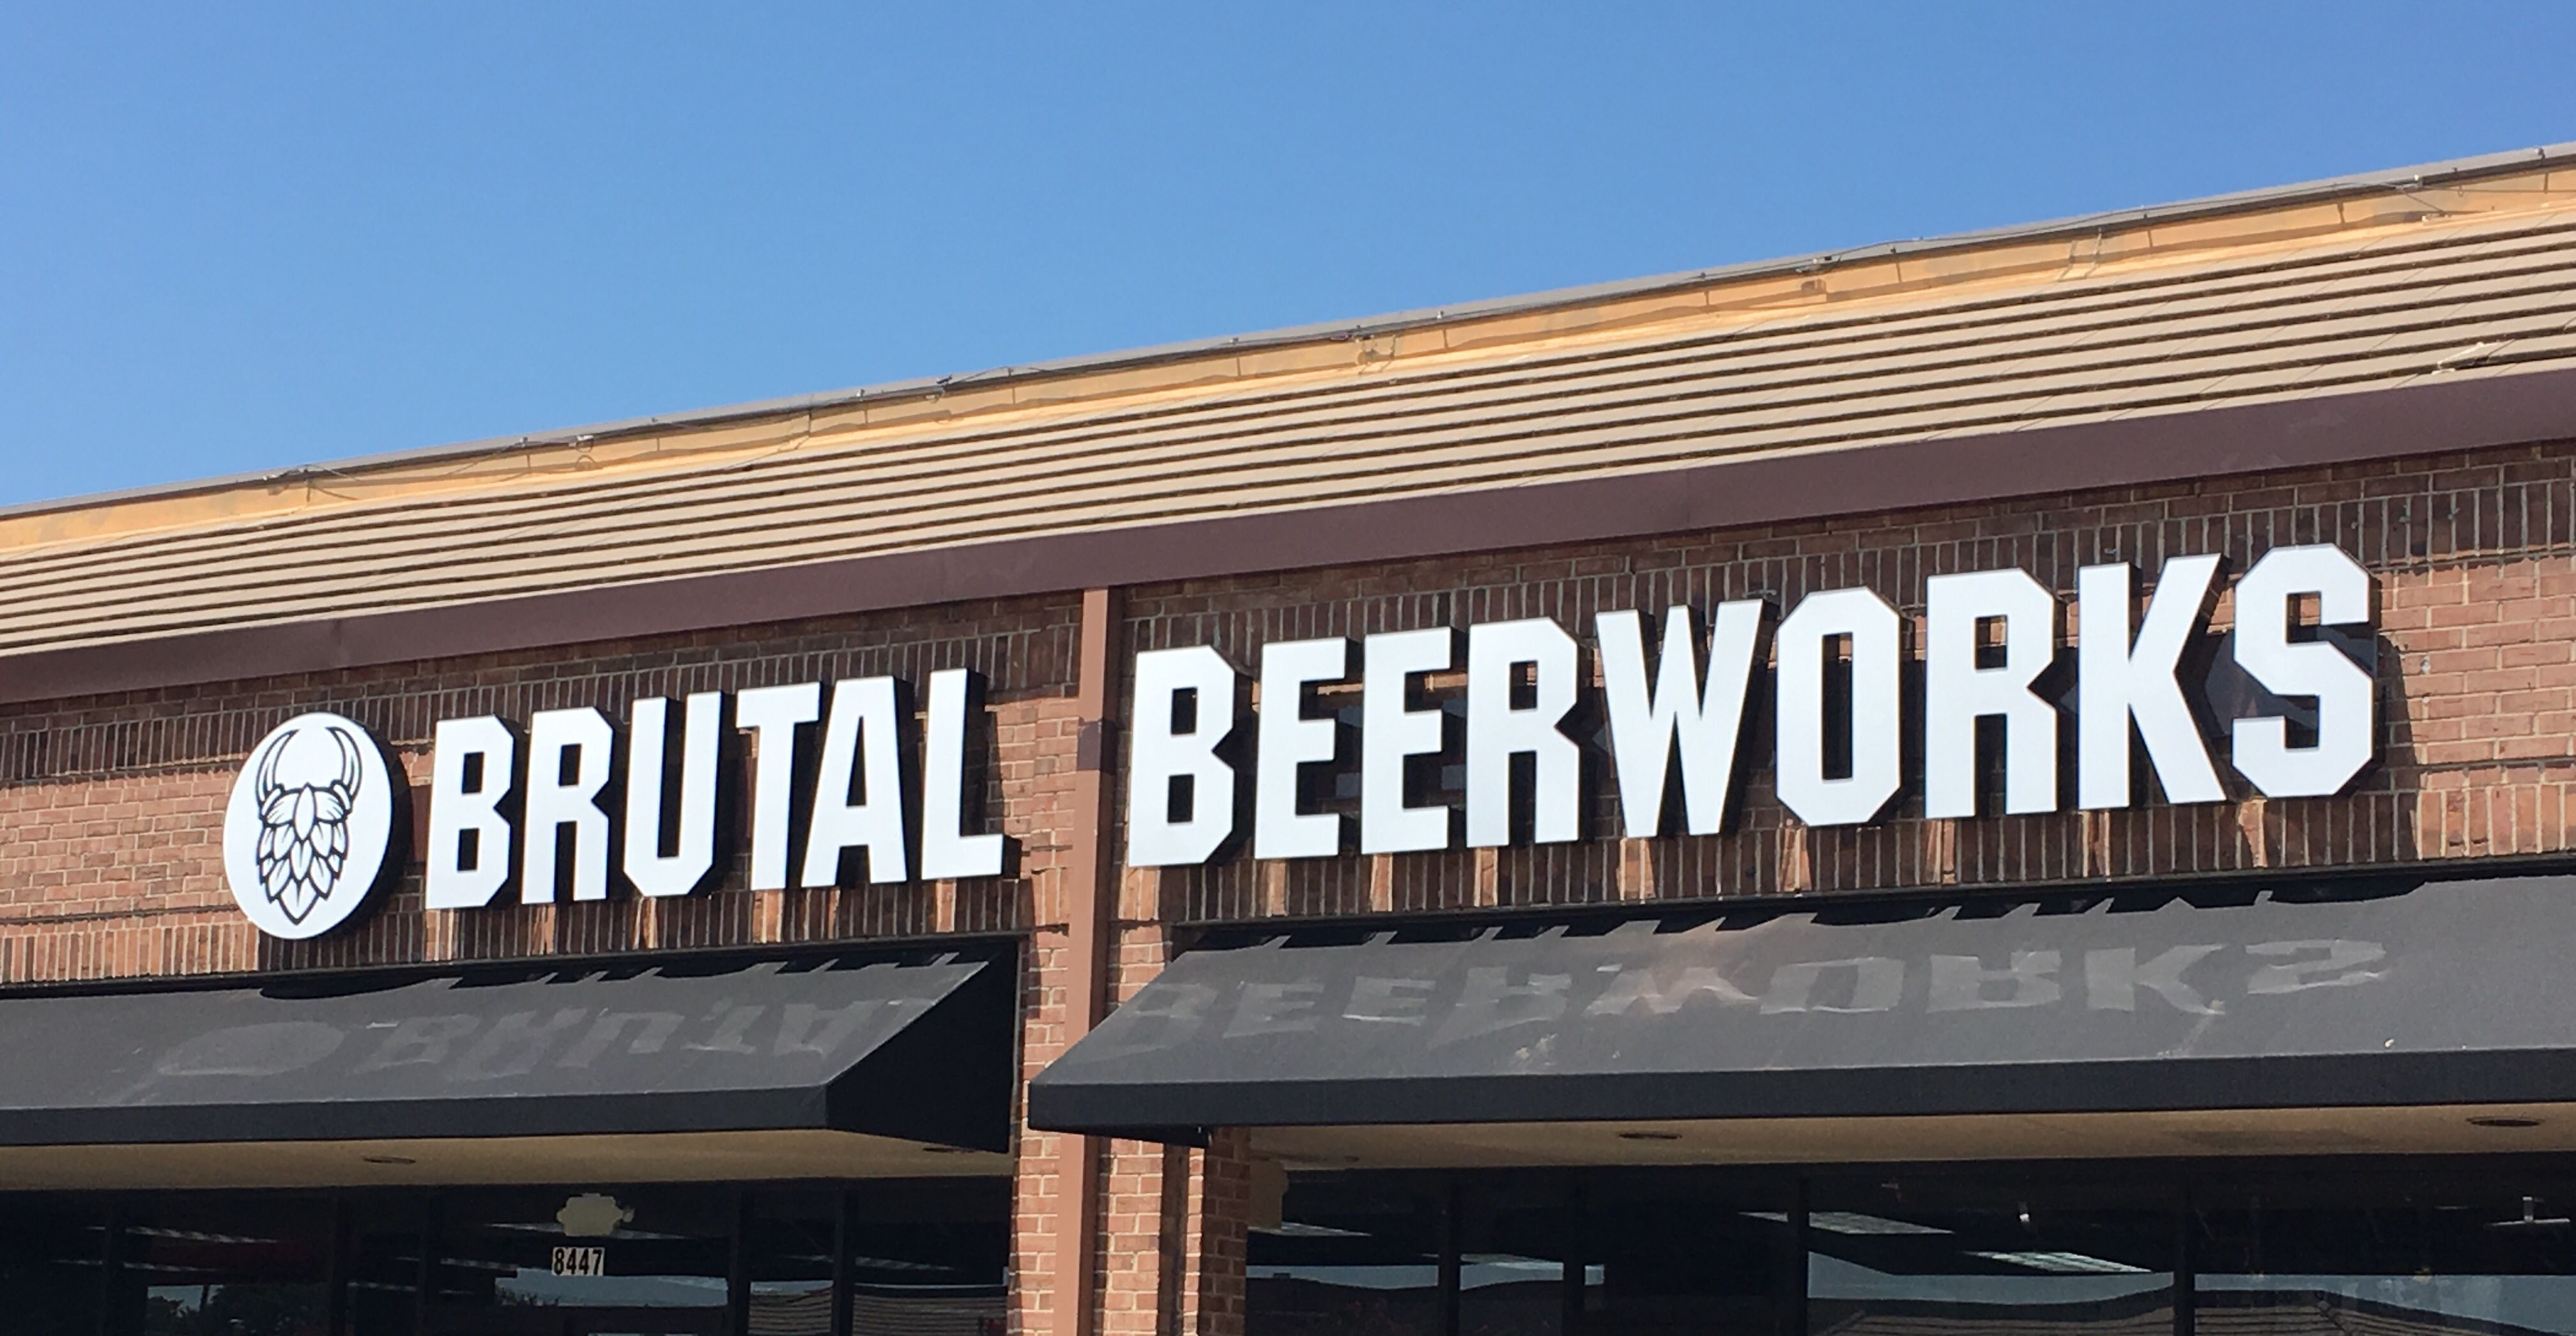 510 Brutal Beerworks North Richland Hills Tx Brewery Tours Outdoor Decor Brewery